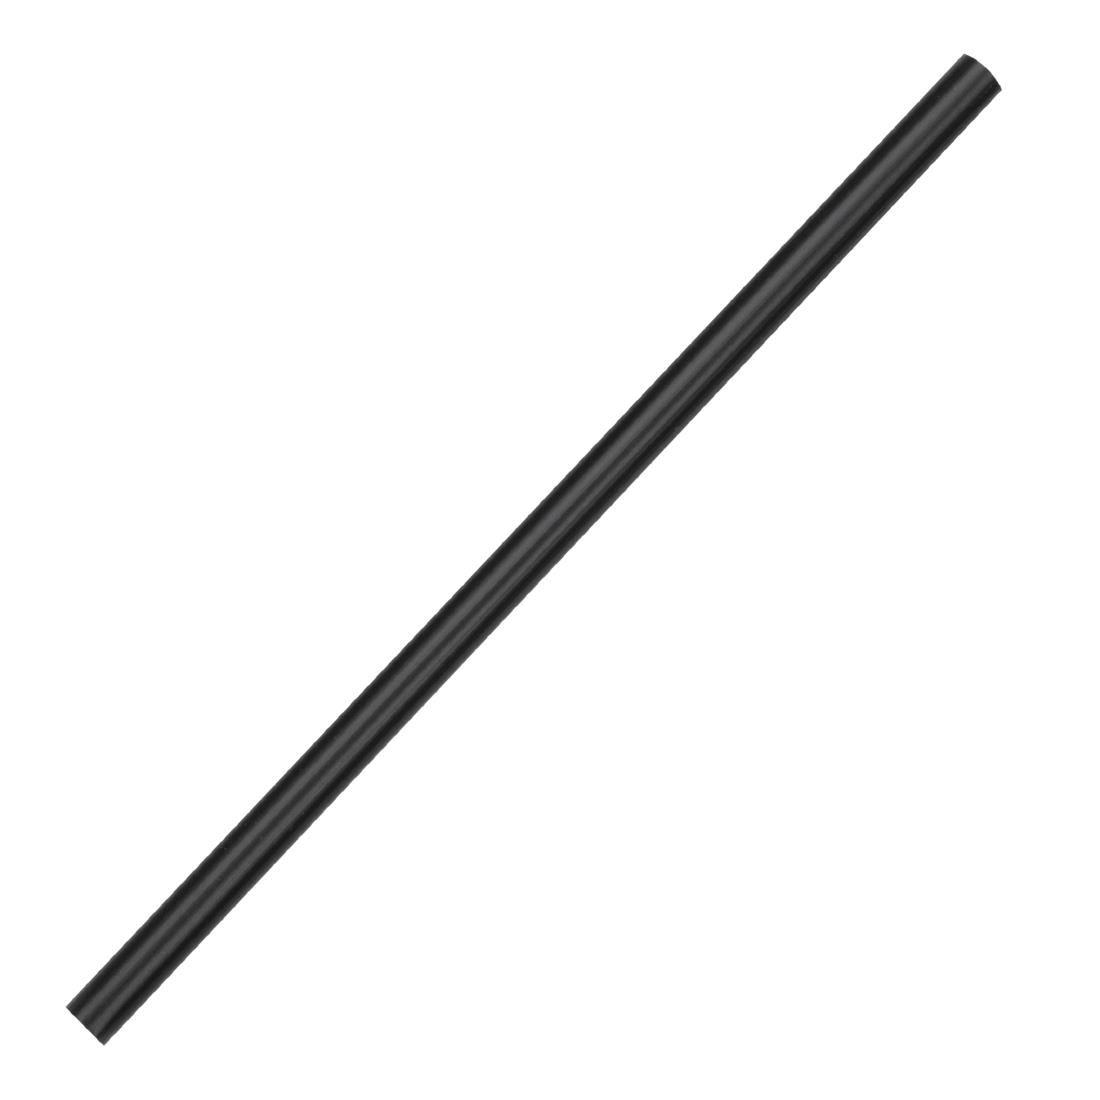 Fiesta Green Compostable CPLA Cocktail Stirrer Straws Black Pack of 250